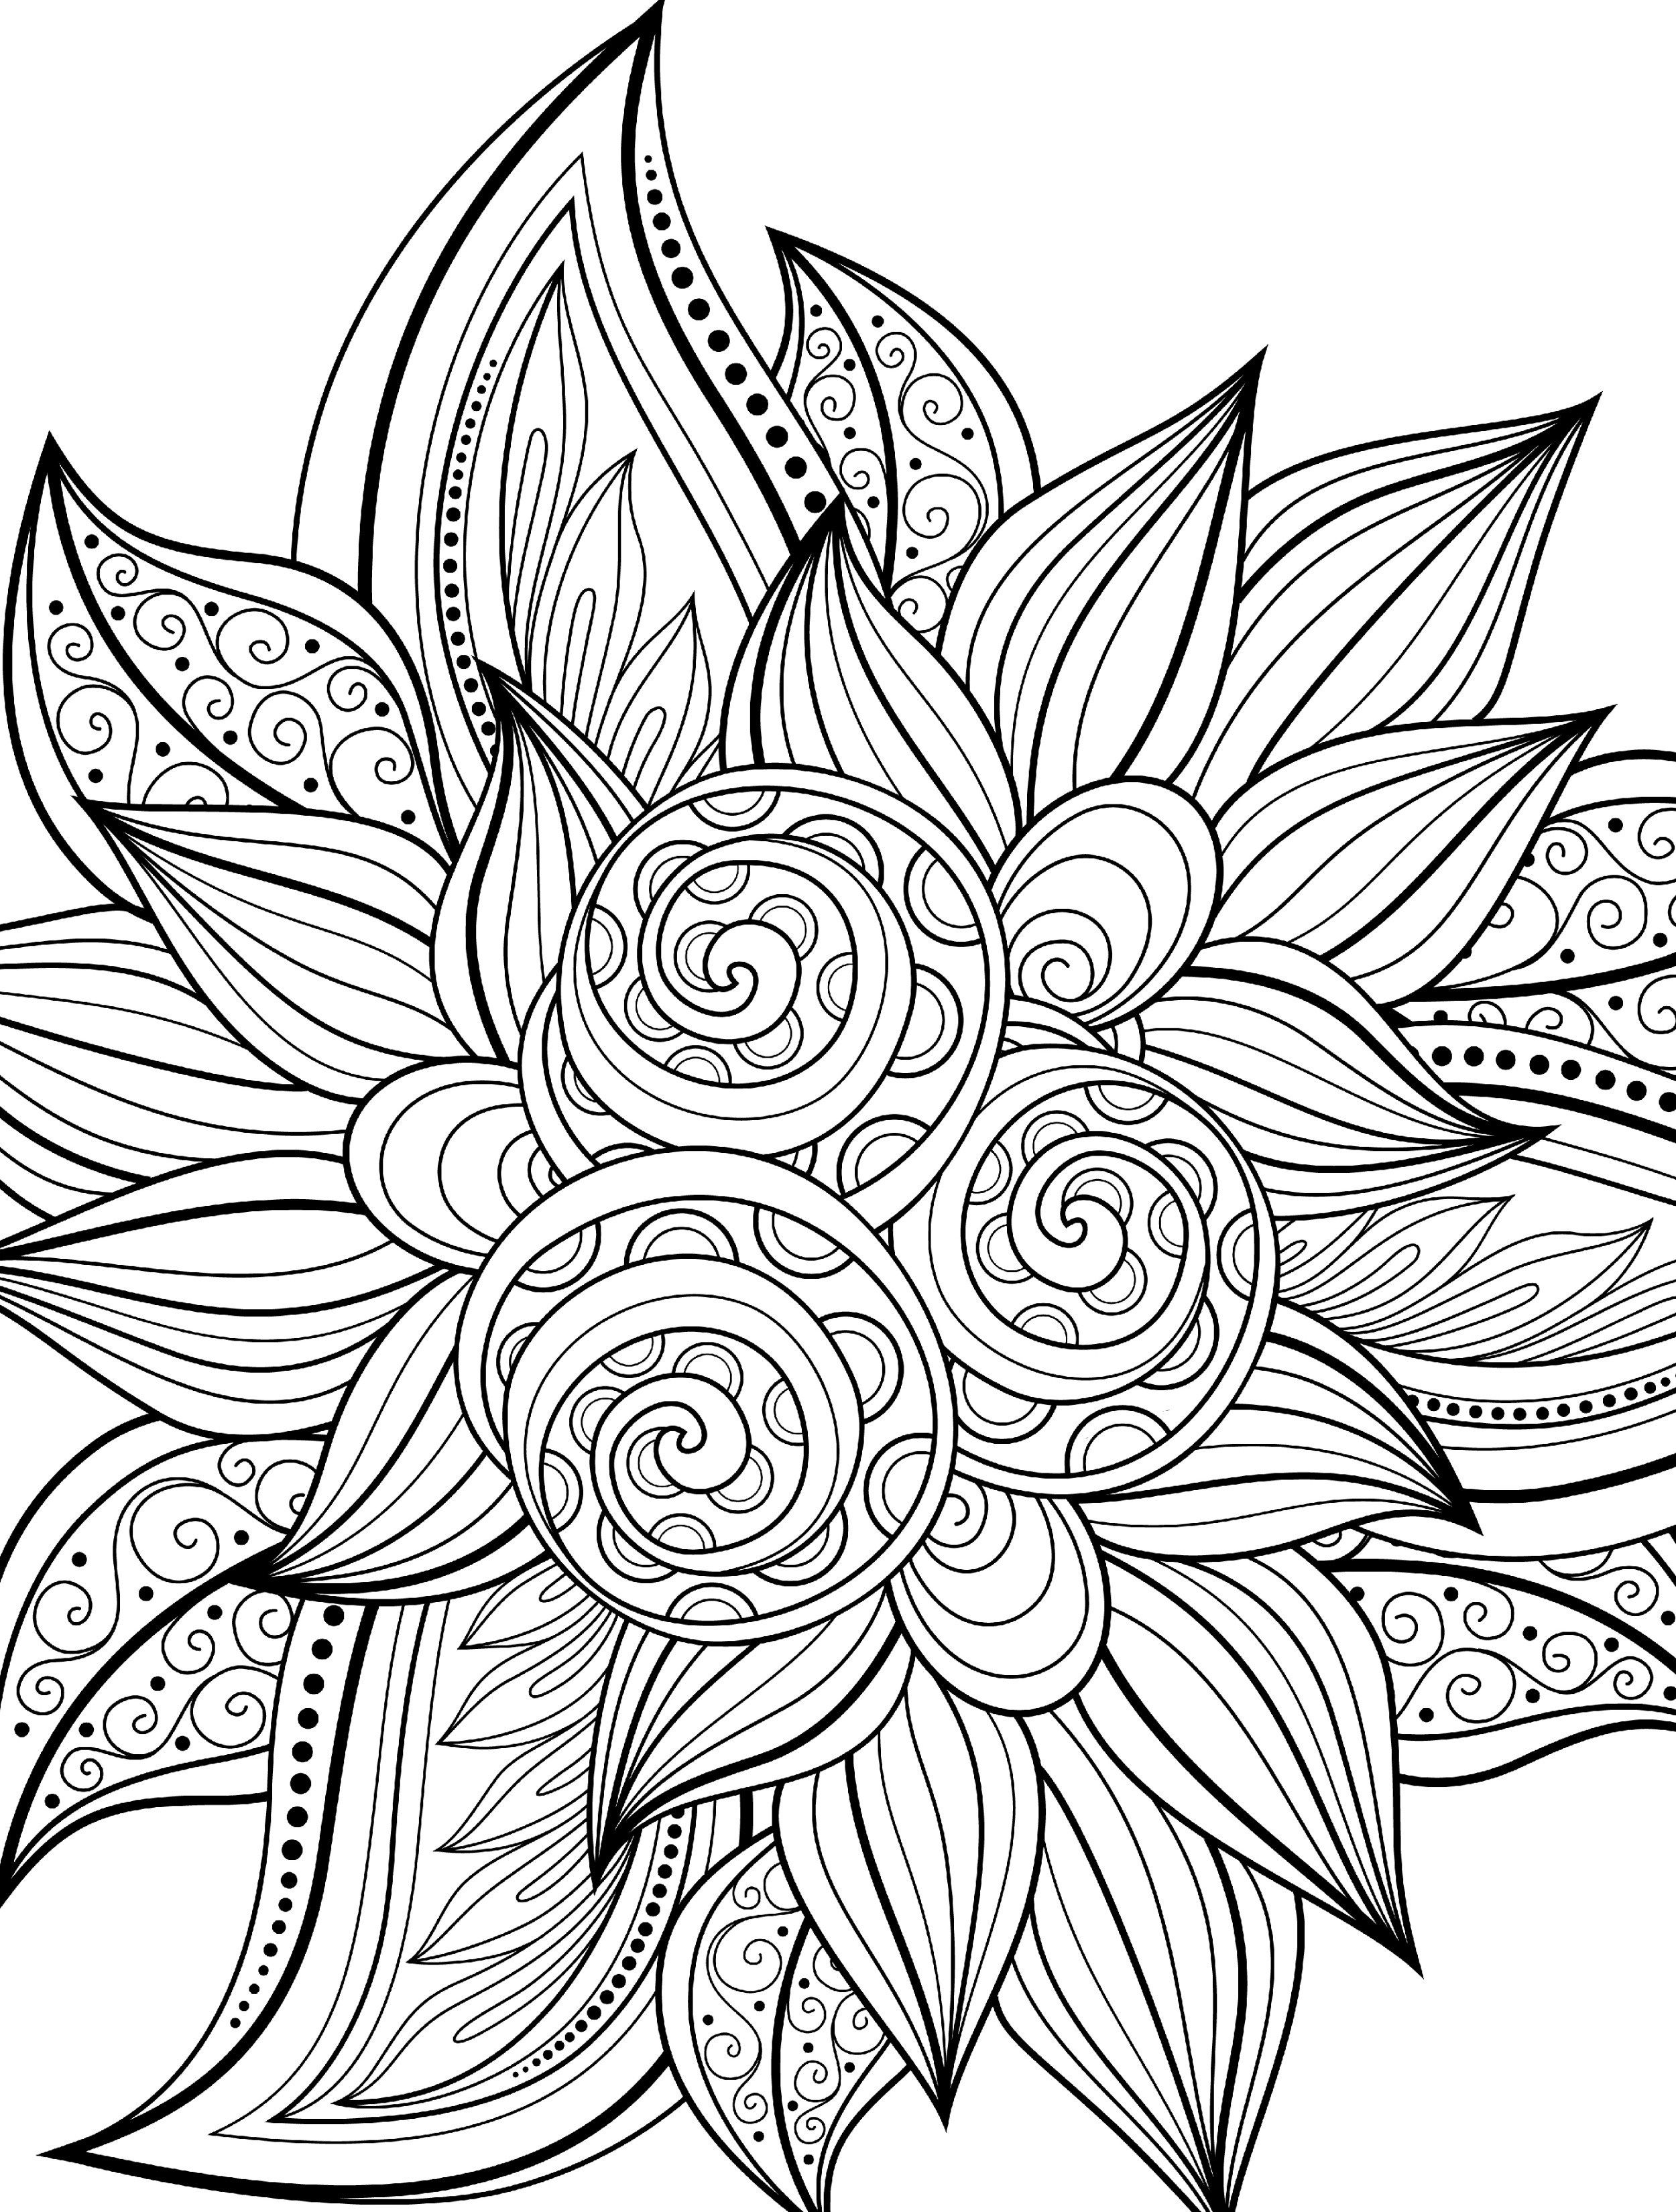 Free printable coloring pages for grown ups - 10 Free Printable Holiday Adult Coloring Pages